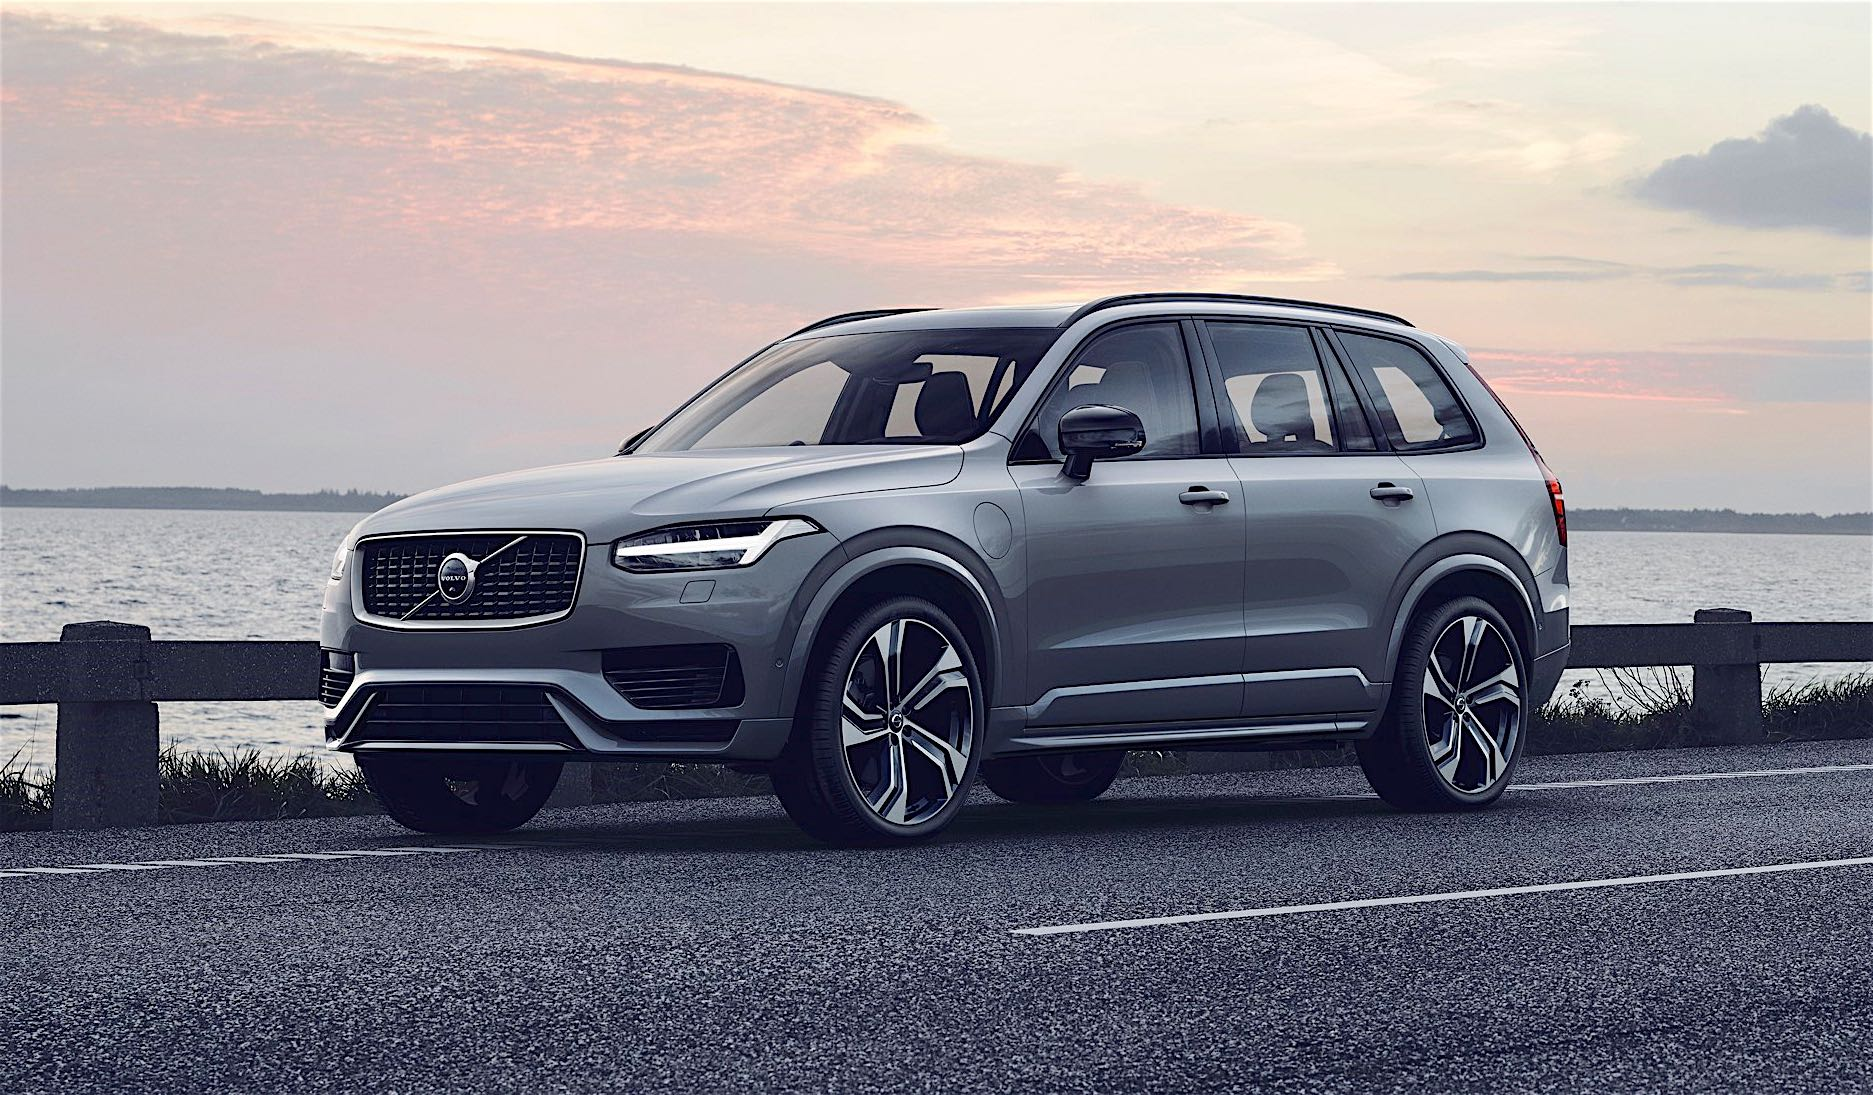 Volvo's refreshed XC90 SUV on the way this summer